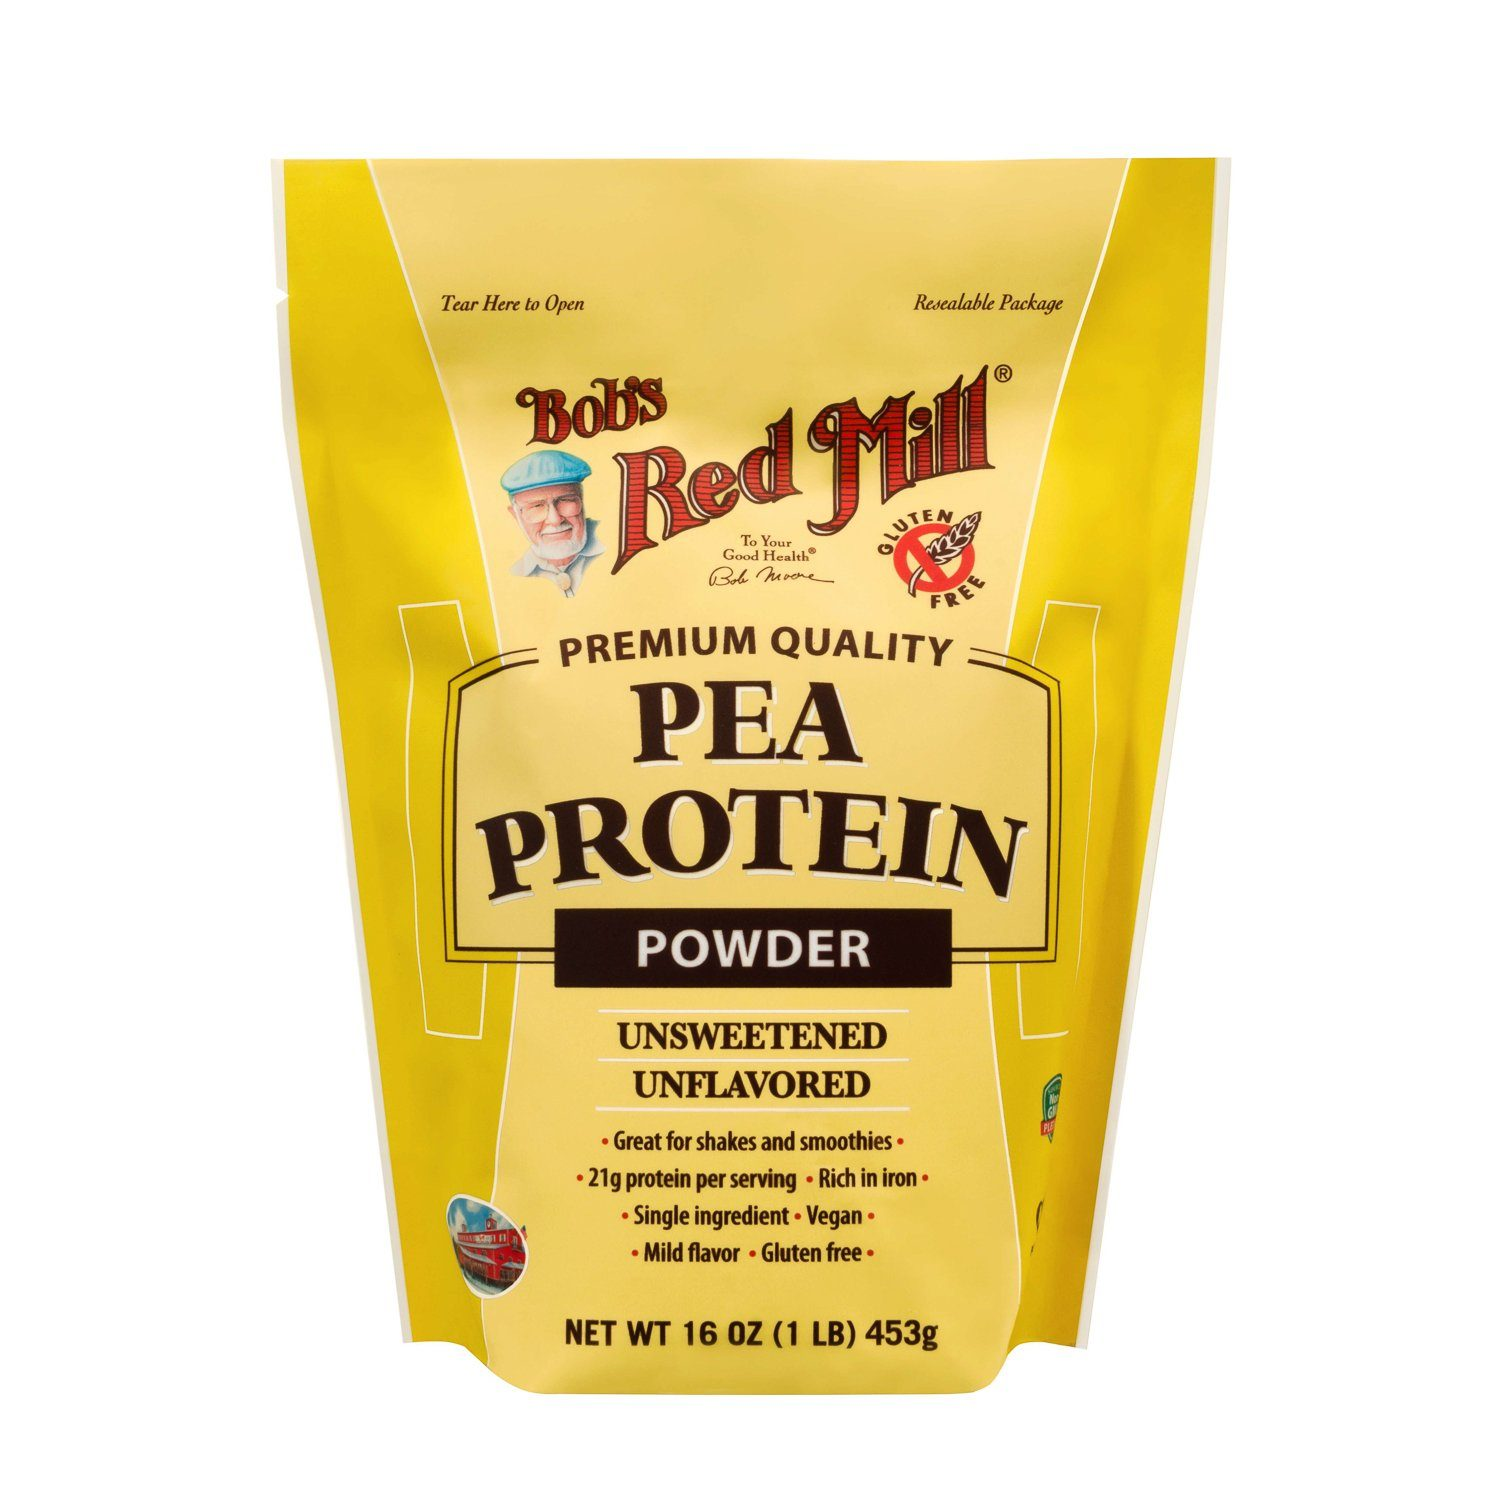 Bob's Red Mill Pea Protein Powder Bob's Red Mill 16 Ounce